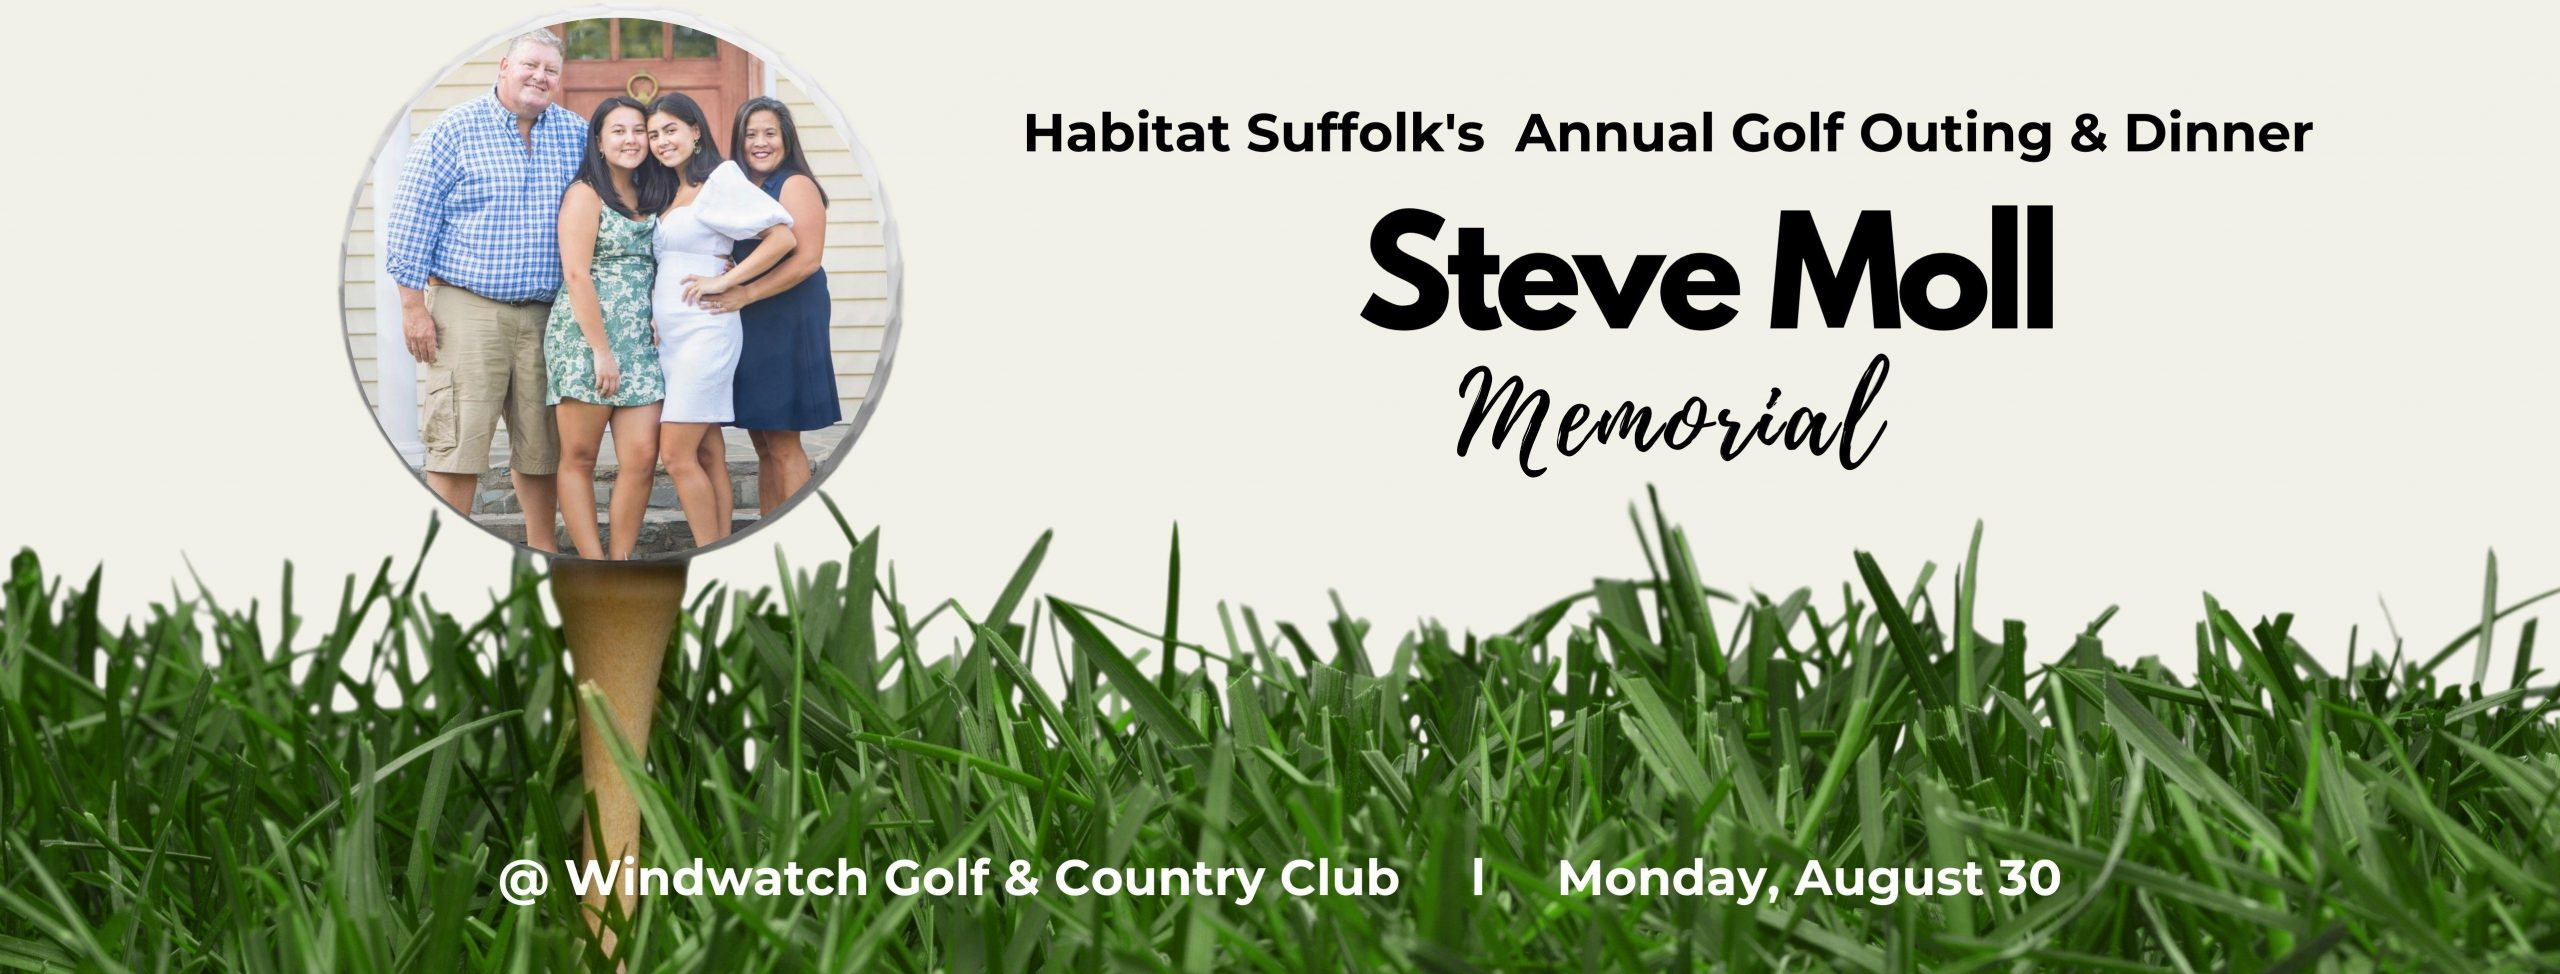 Habitat Suffolk's 2021 Annual Golf Outing & Dinner in Memory of Steve Moll